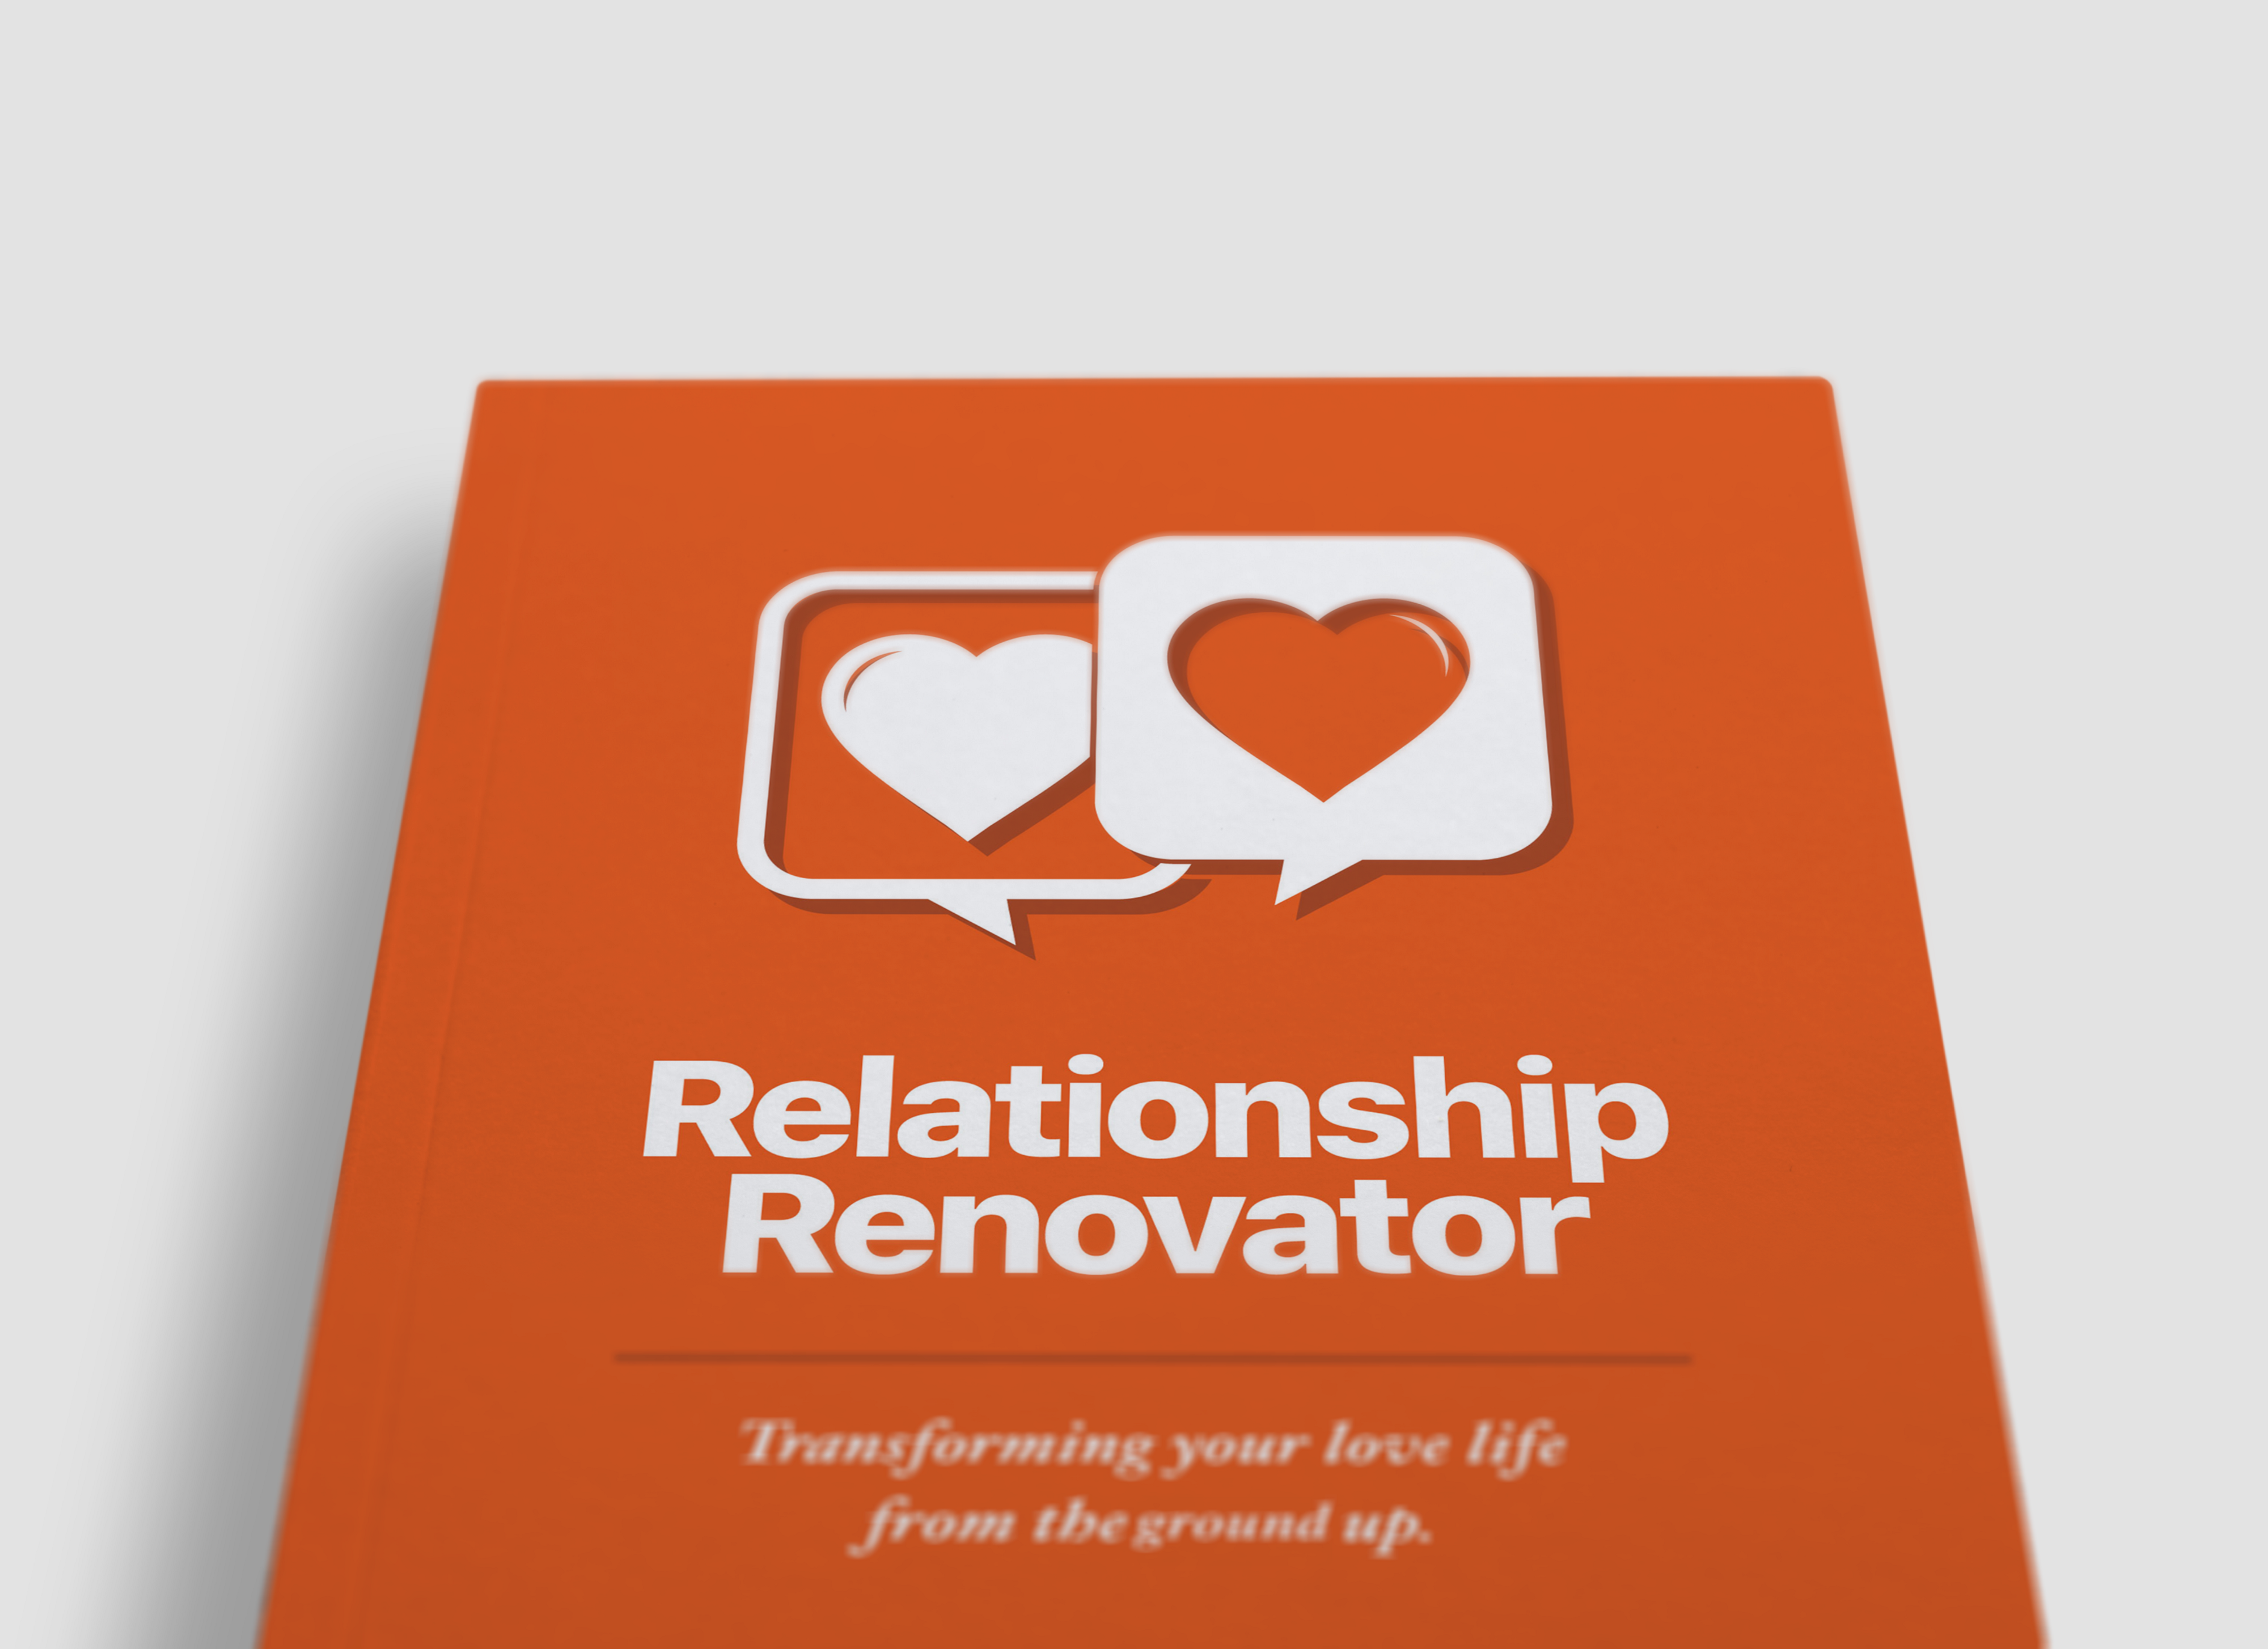 The orange cover of Relationship Renovator sits against a white background.